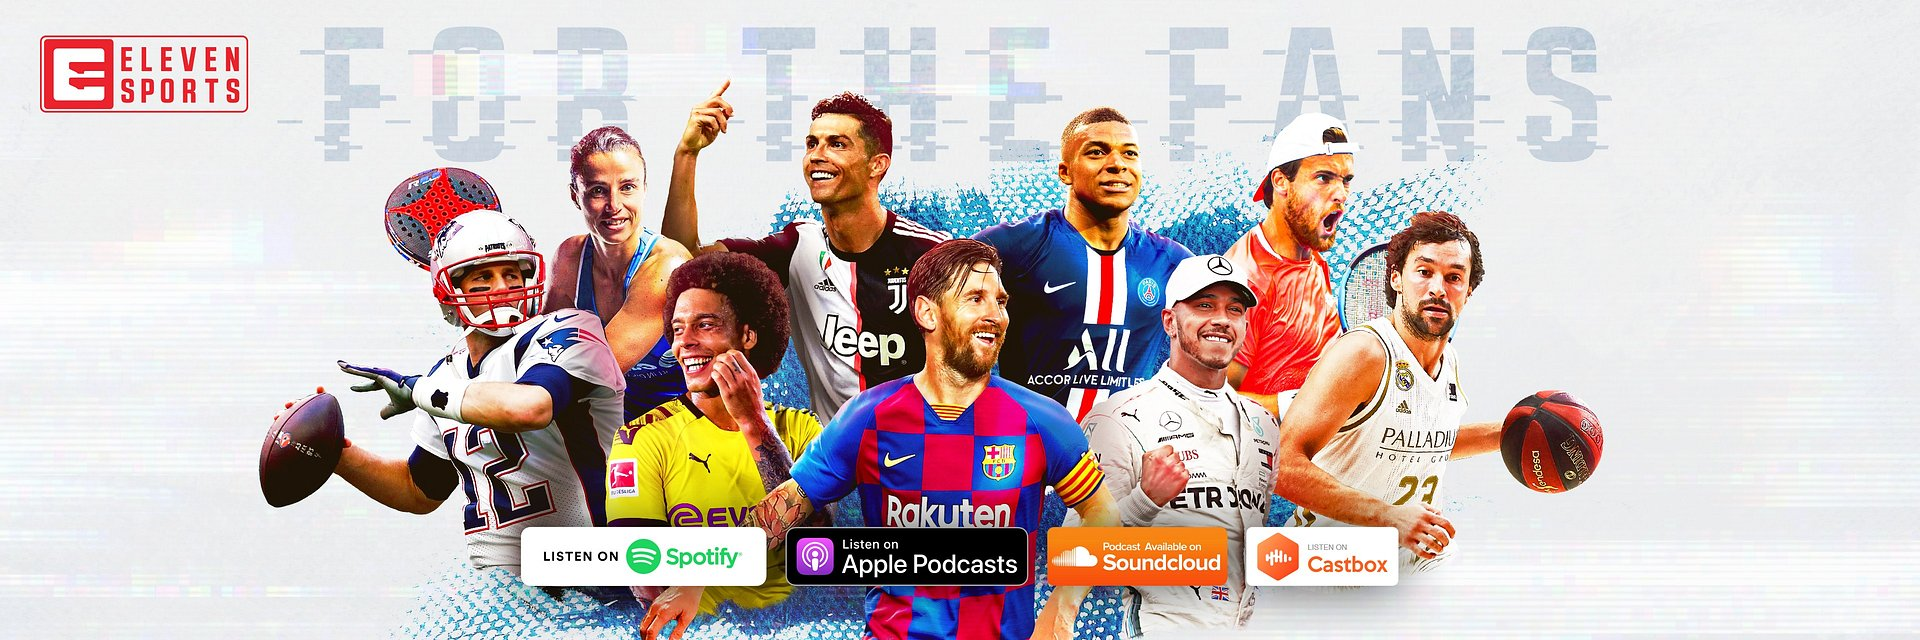 Eleven Sports aposta nos podcasts